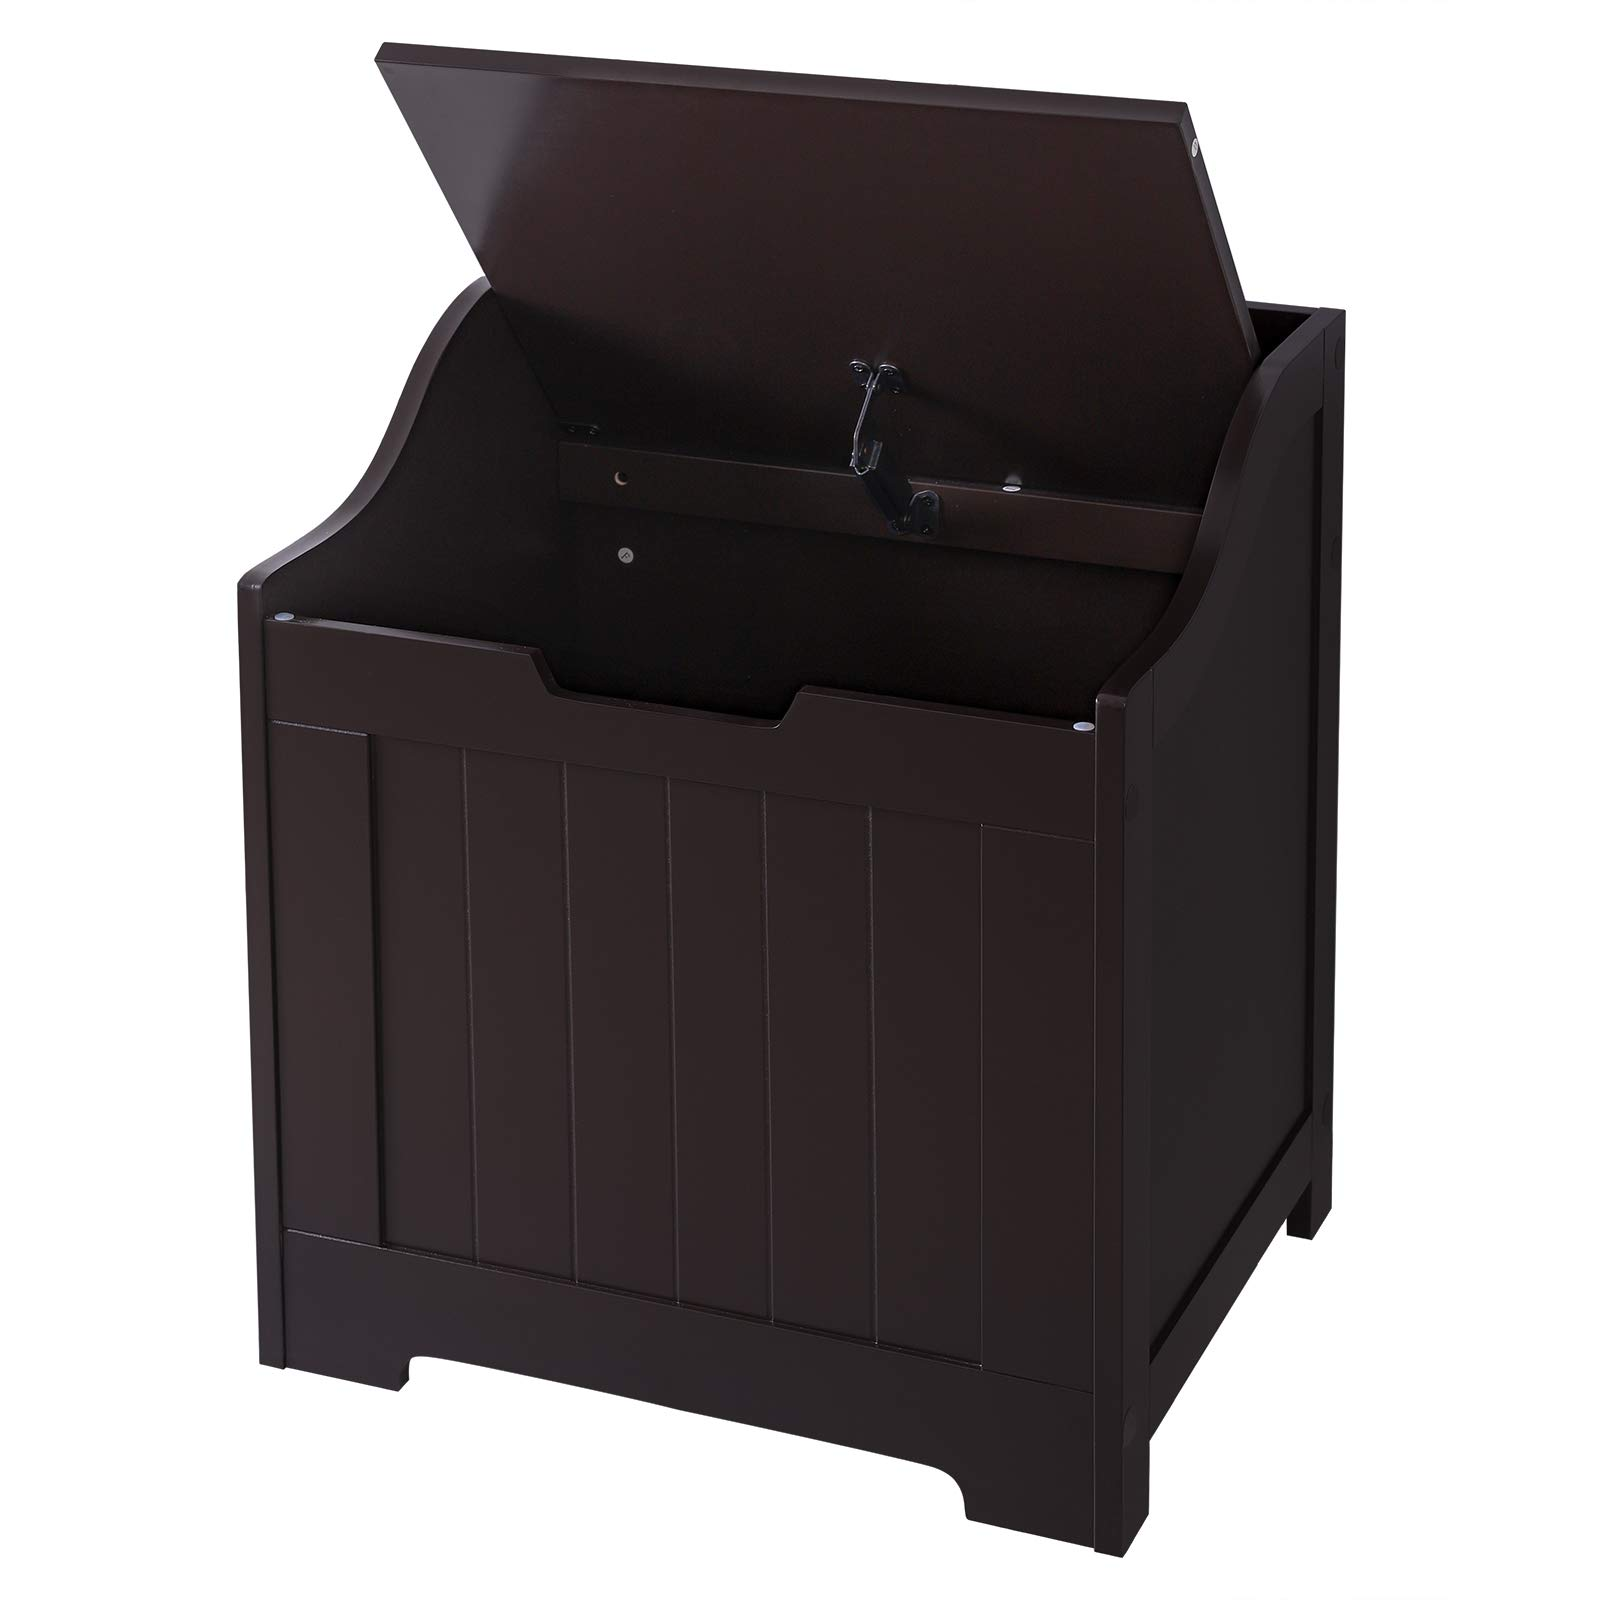 SONGMICS Flip Top Storage Bench, Toy Box and Chest with Safety Hinge in the Entryway and Kids Room, Espresso, ULHS12BR